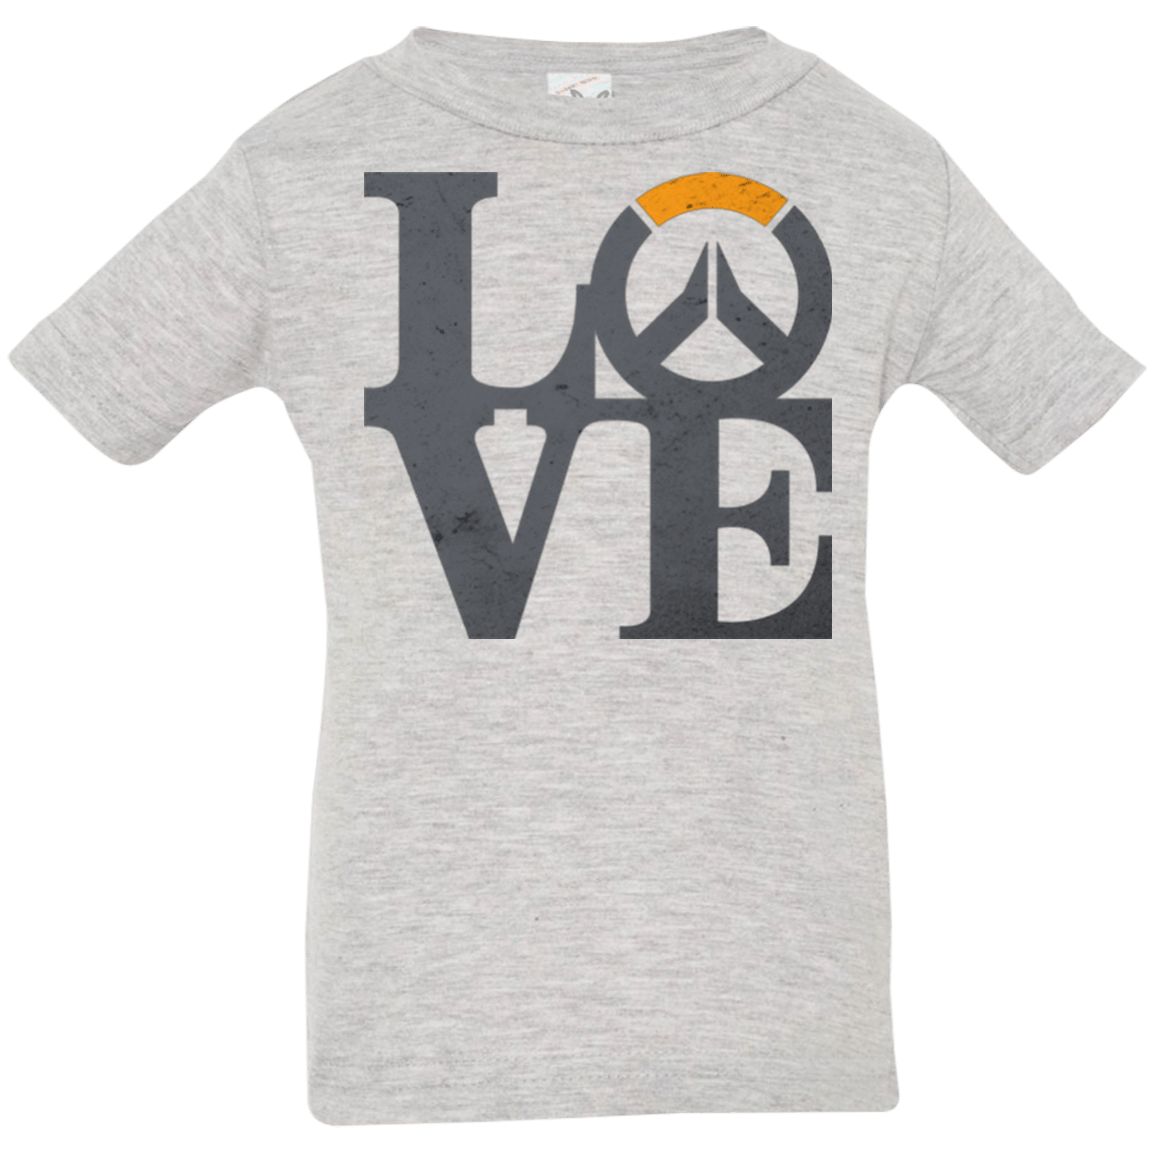 T-Shirts Heather / 6 Months Loverwatch Infant Premium T-Shirt